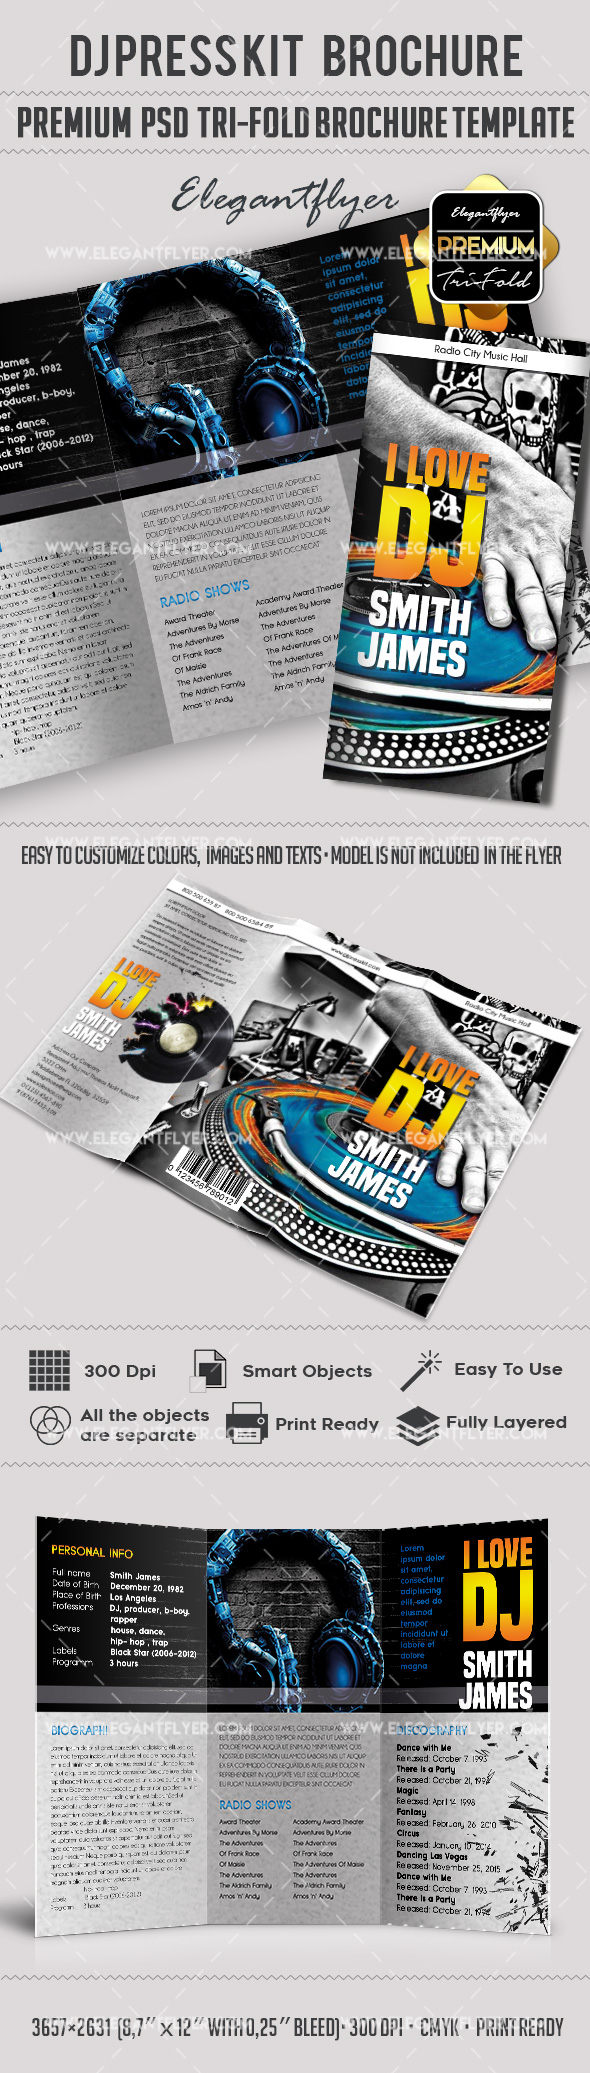 Brochure for dj press kit by elegantflyer for Dj press kit template free